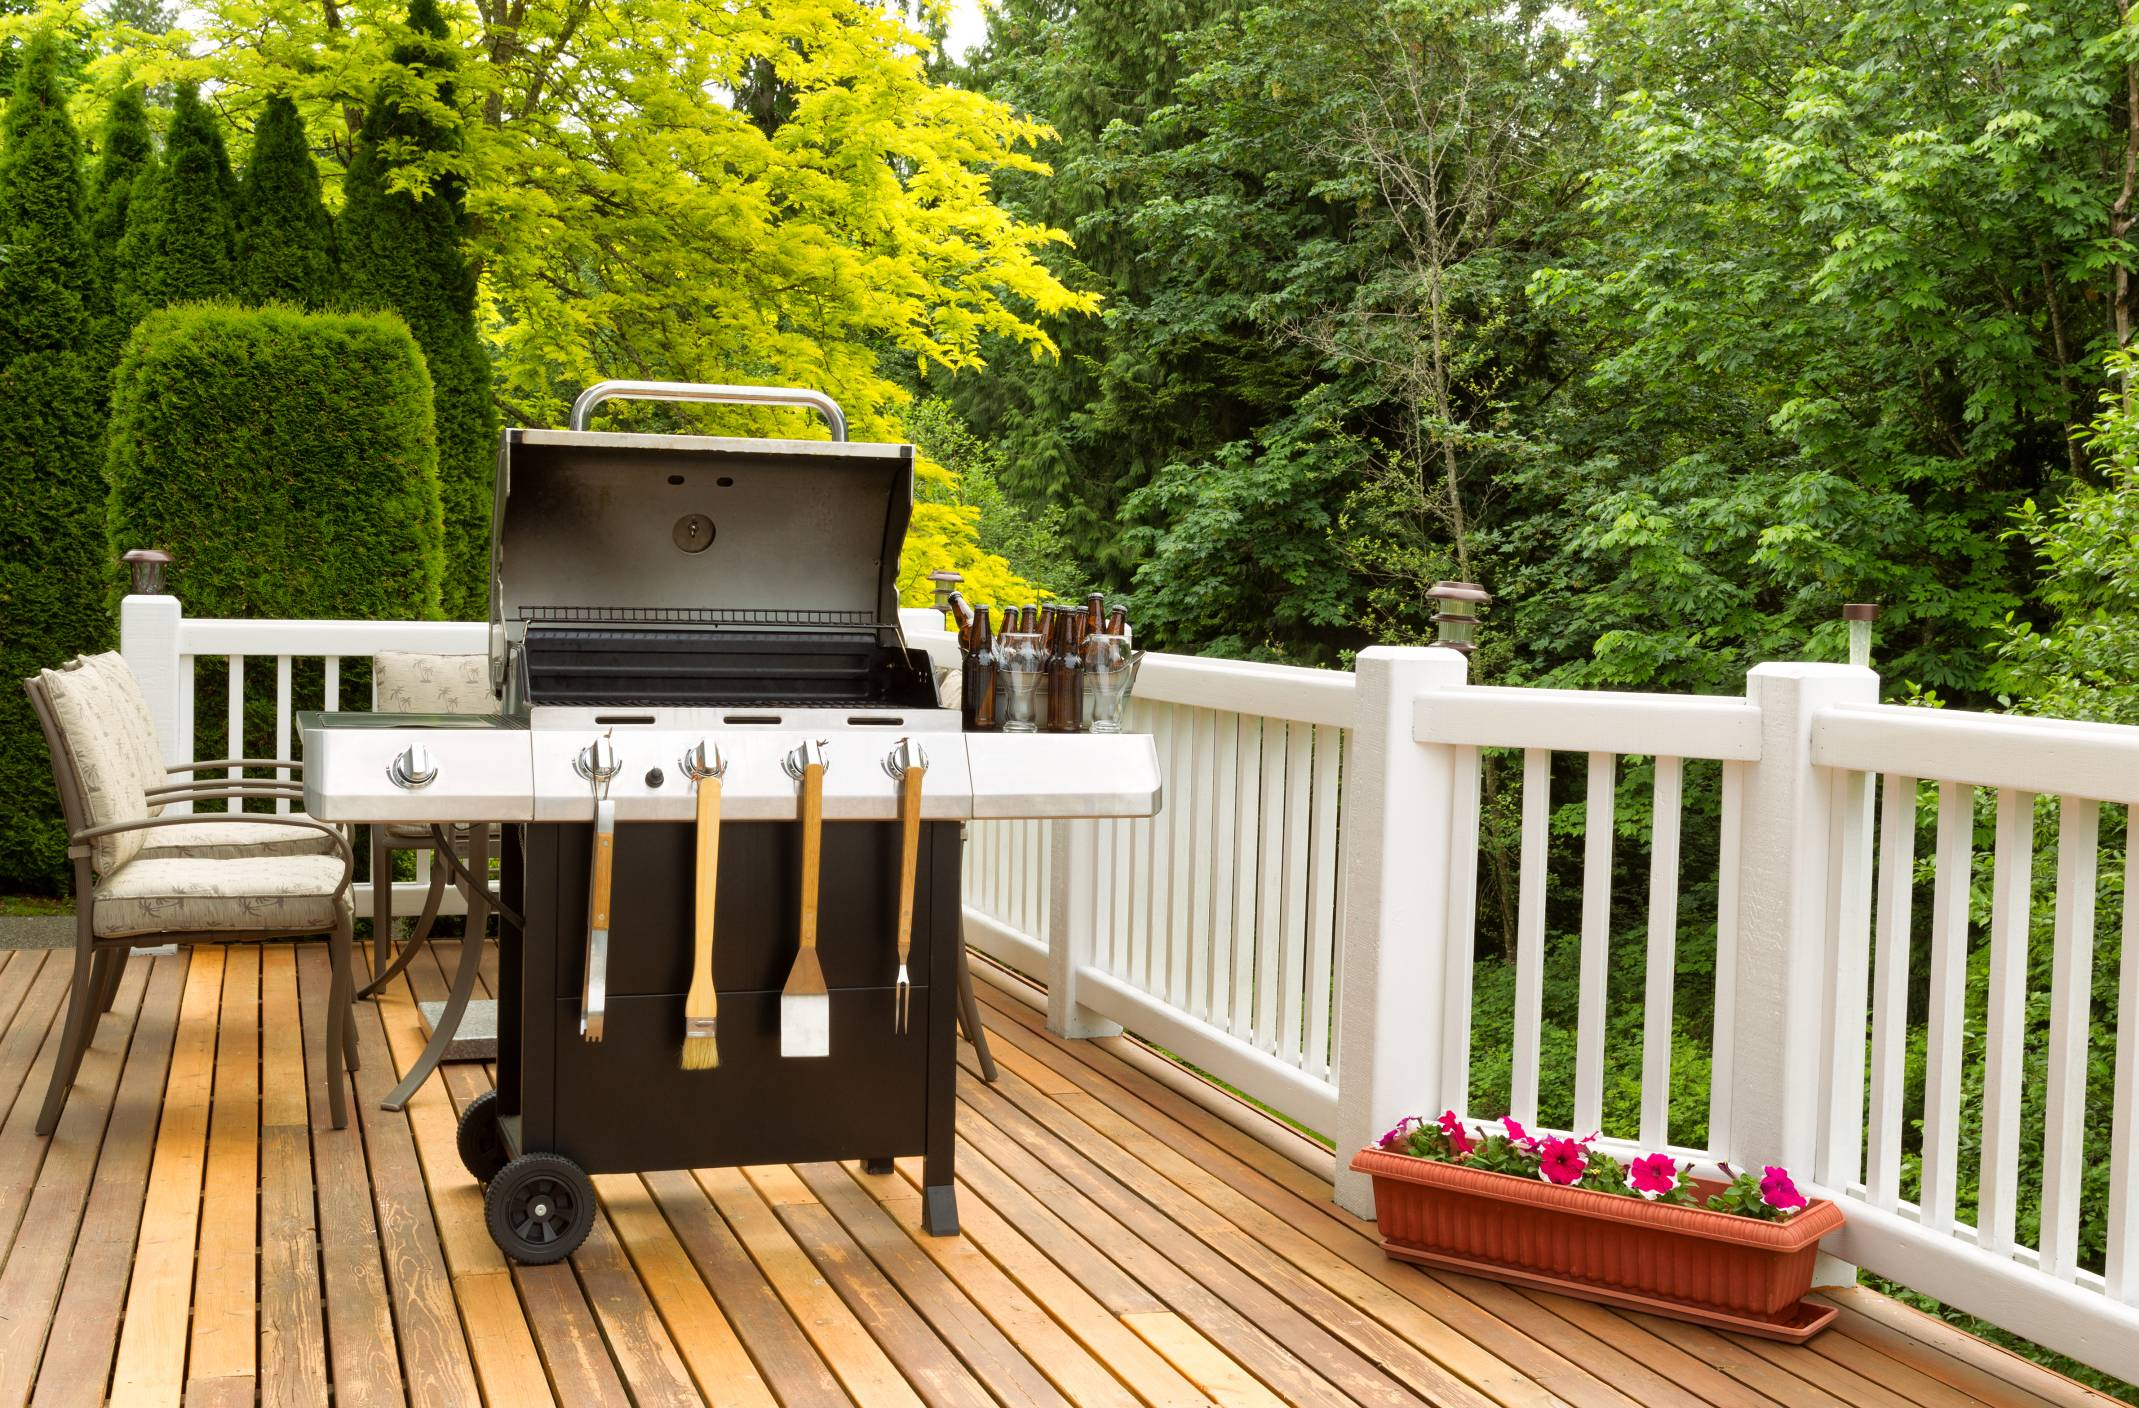 BBQ grill on an outdoor deck- patio market shares